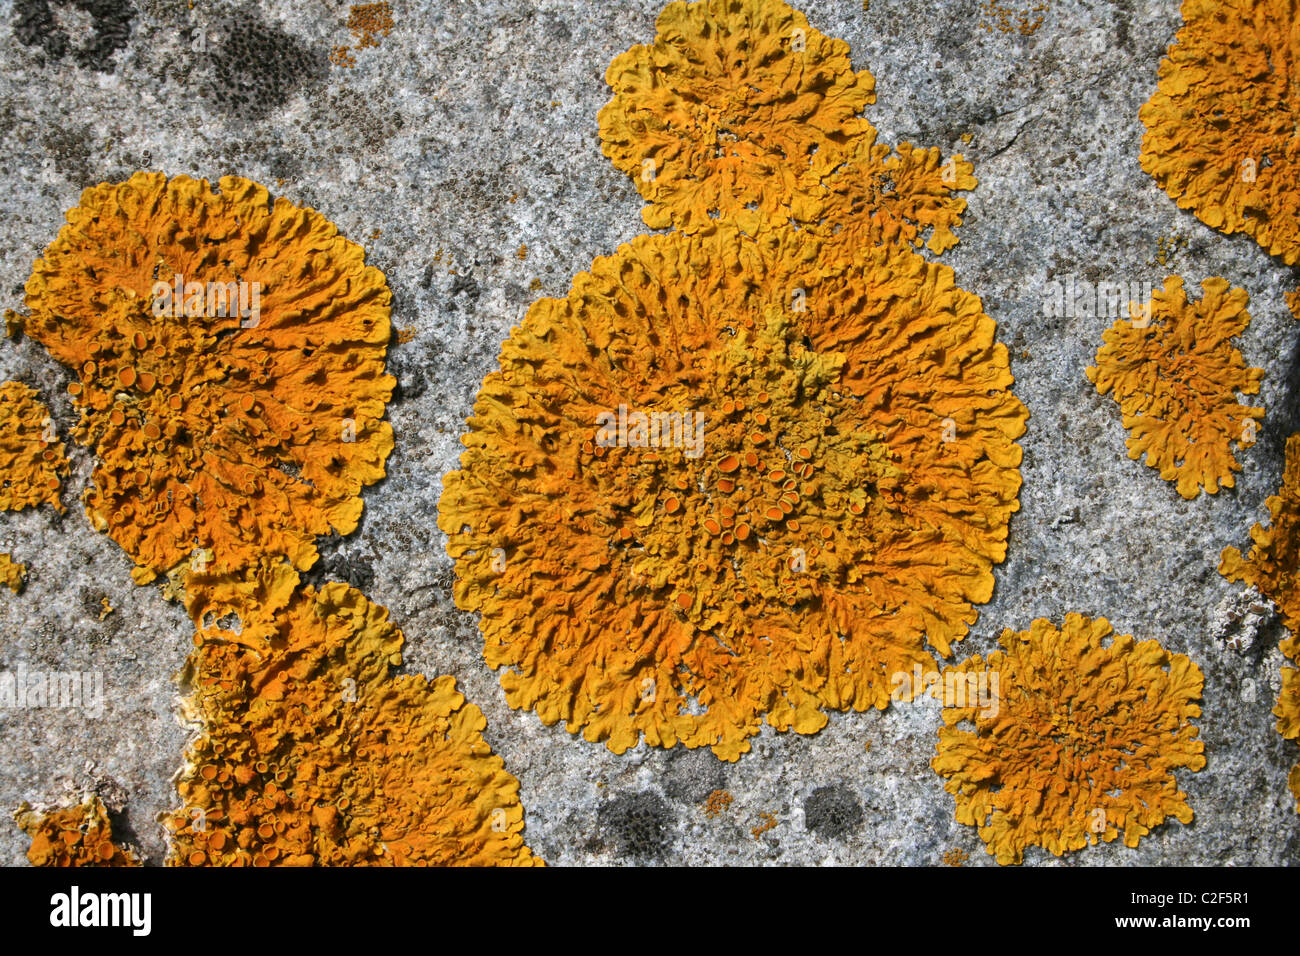 Yellow Orange Rosette Of The Maritime Lichen Caloplaca thallincola On Rocks At Conwy RSPB Reserve, Wales - Stock Image